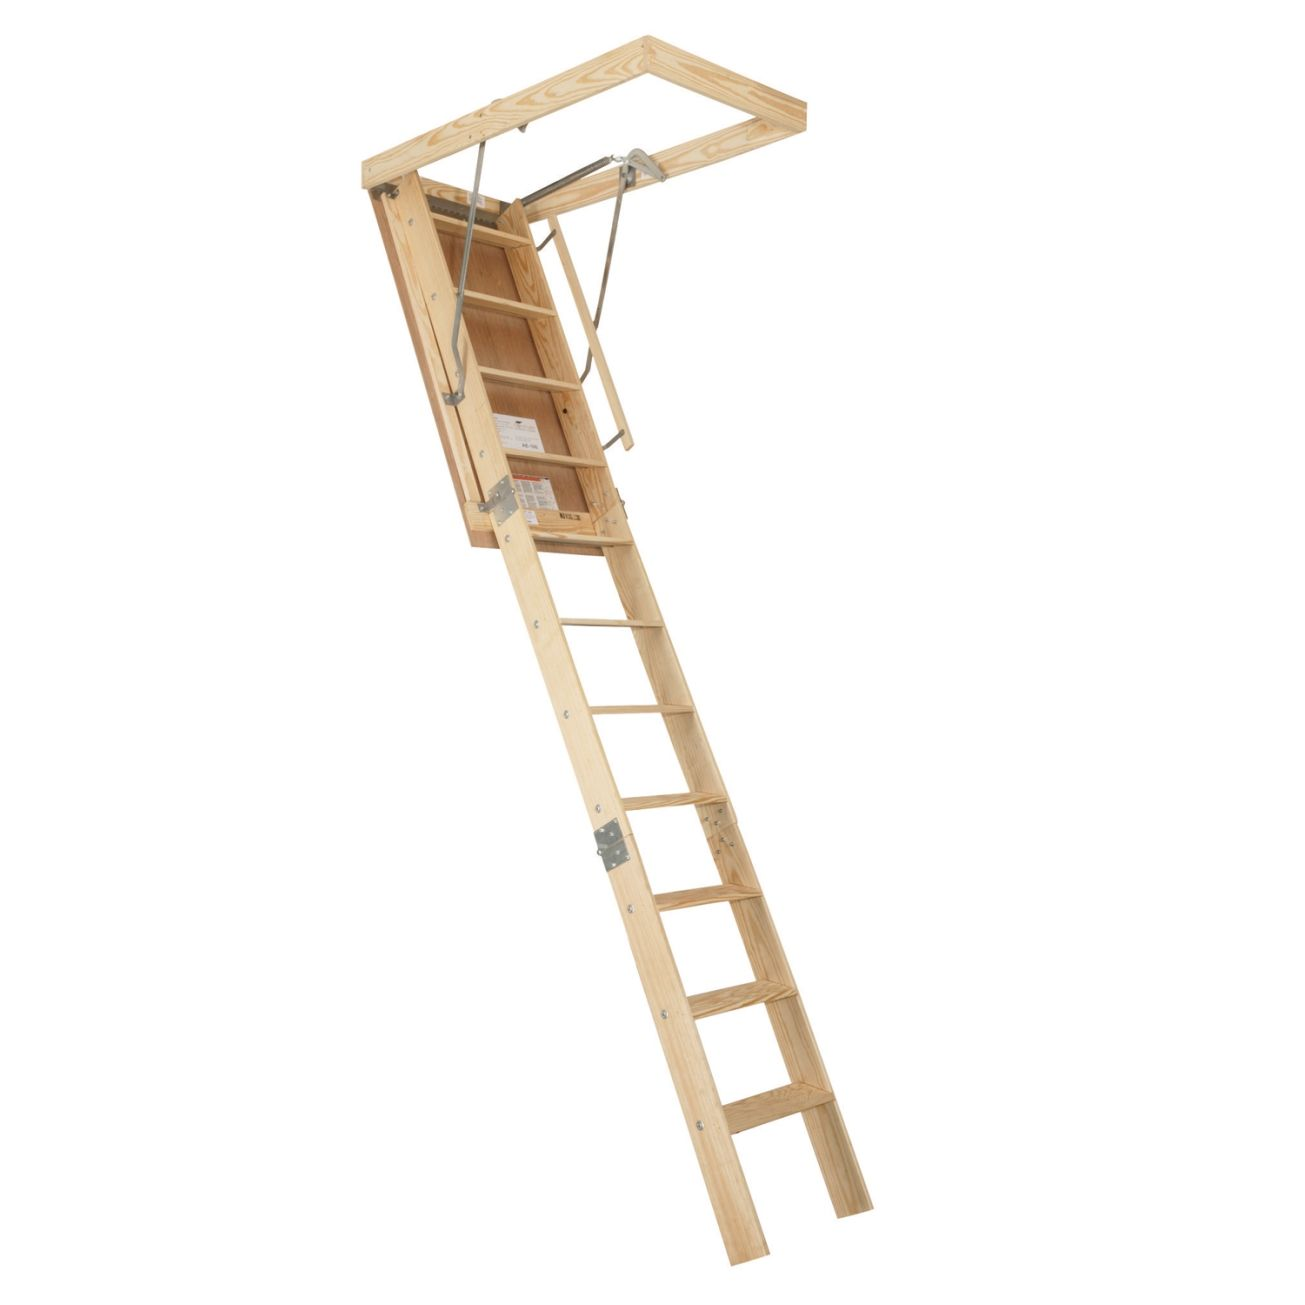 Century® Premium Heavy Duty 8Ft 9In Wooden Attic Stairway (AET-89) - Attic Ladders - Ace ($160)